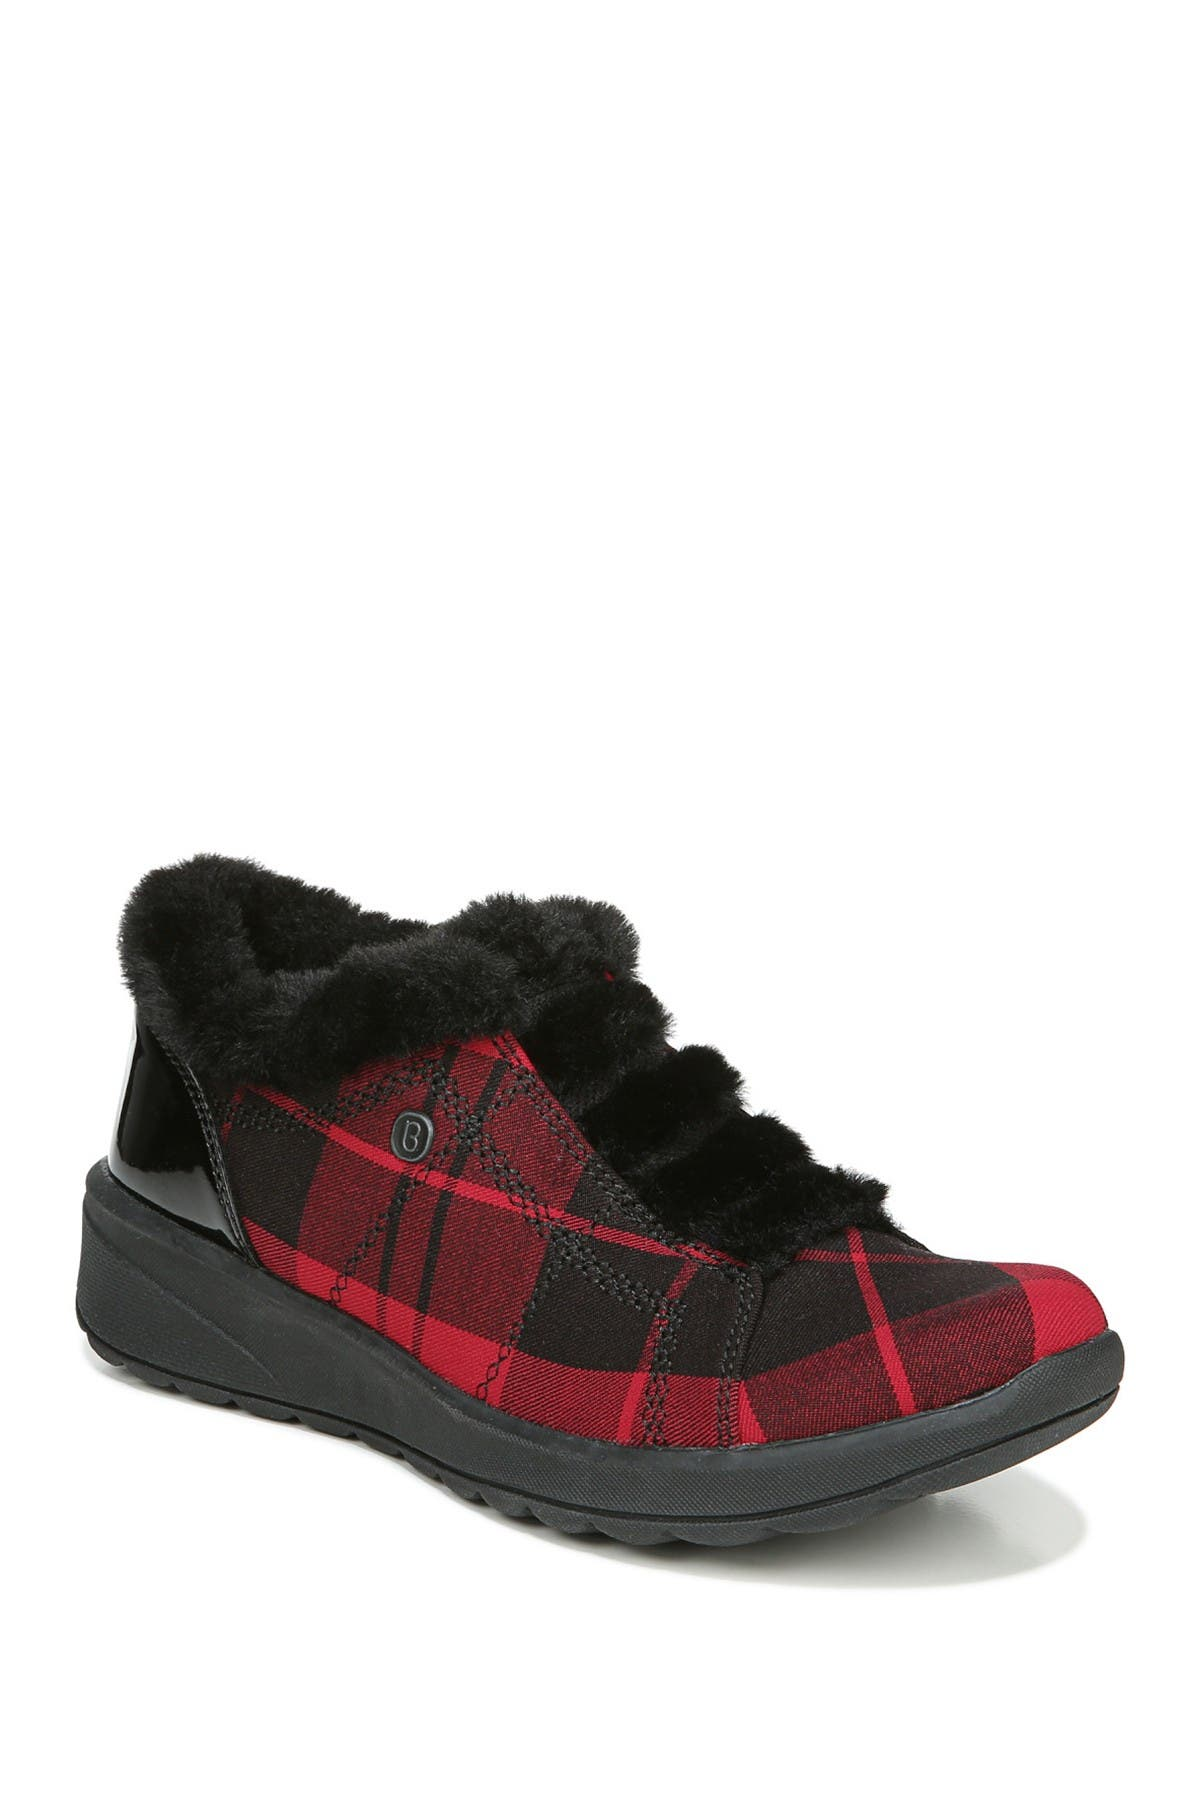 Image of BZEES DO NOT SELL Golden Plaid Faux Fur Trim Wedge Slip-On Bootie